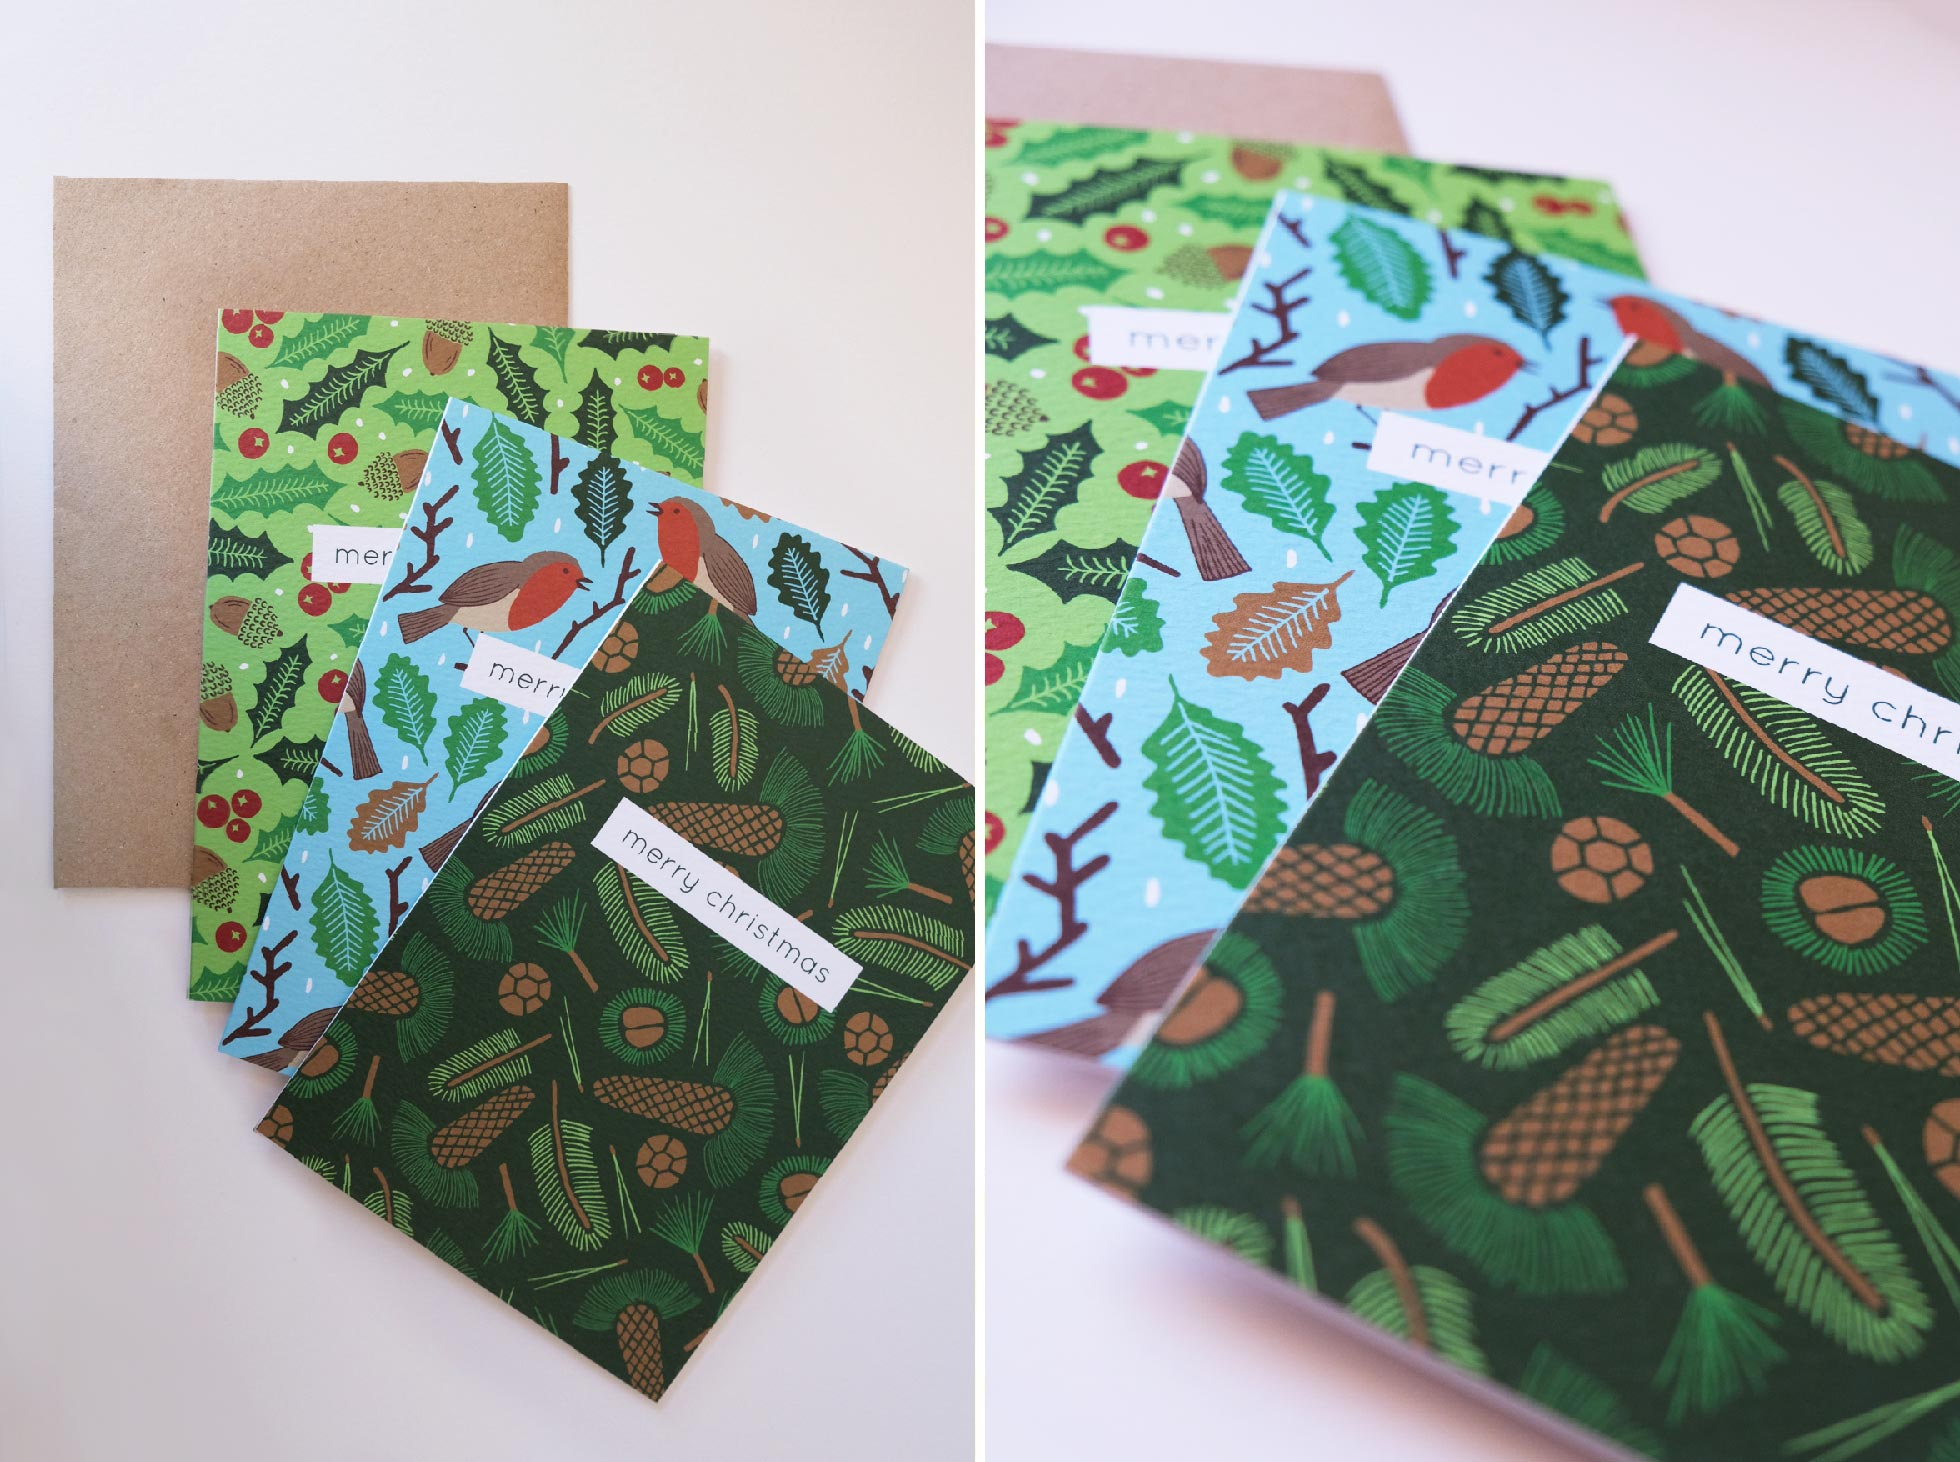 Stylish high quality patterned Christmas cards from Studio Element